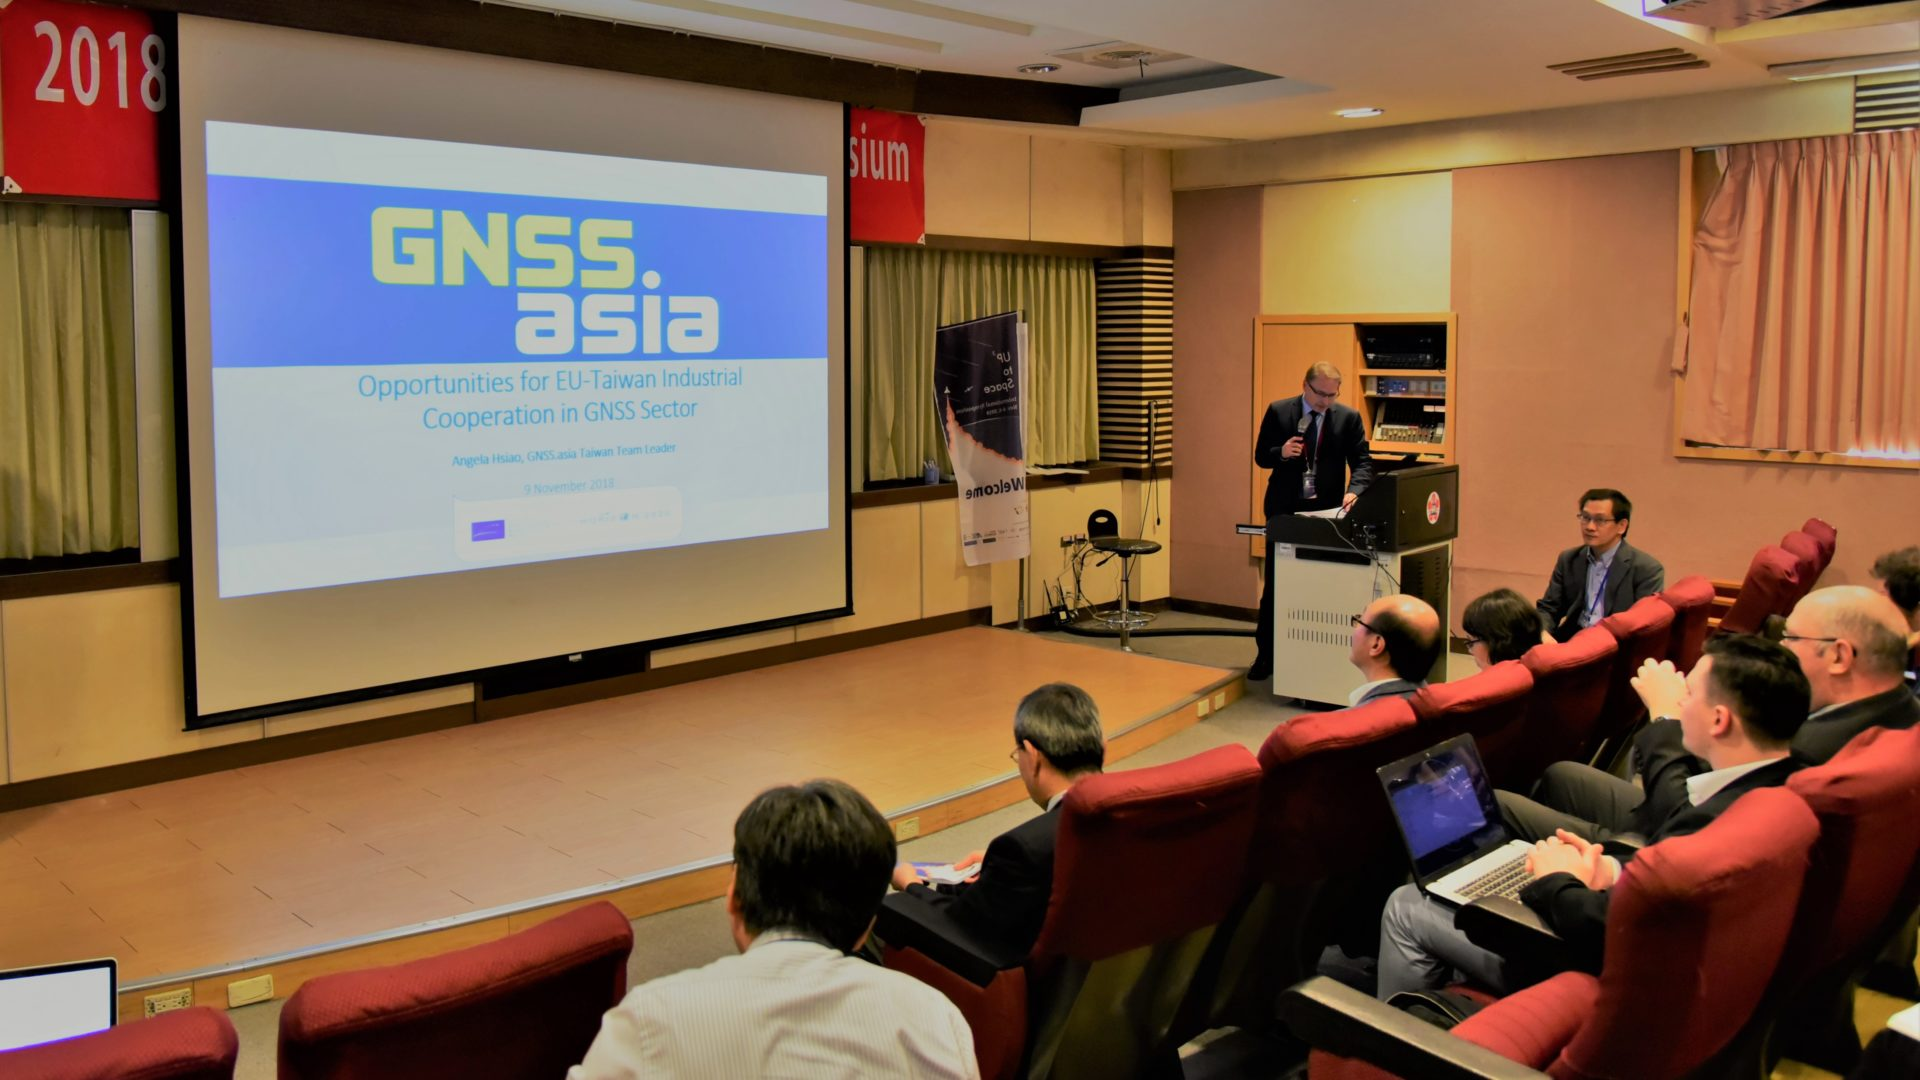 GNSS.asia 參與 2018 UP³ to Space International Symposium